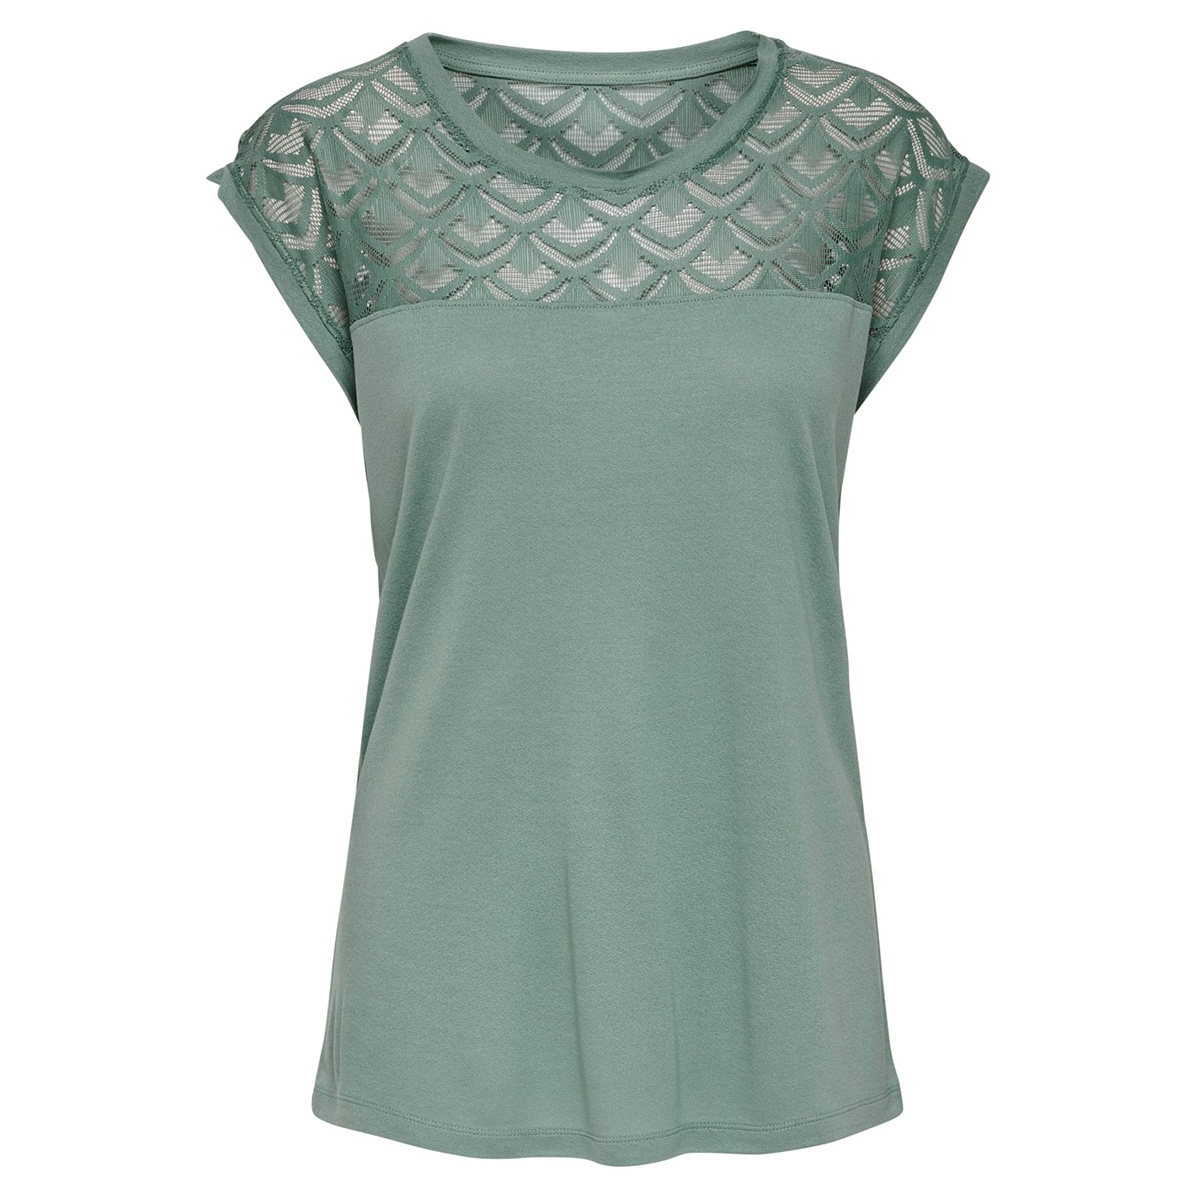 onlnicole s/s mix top noos 15151008 only t-shirt chinois green